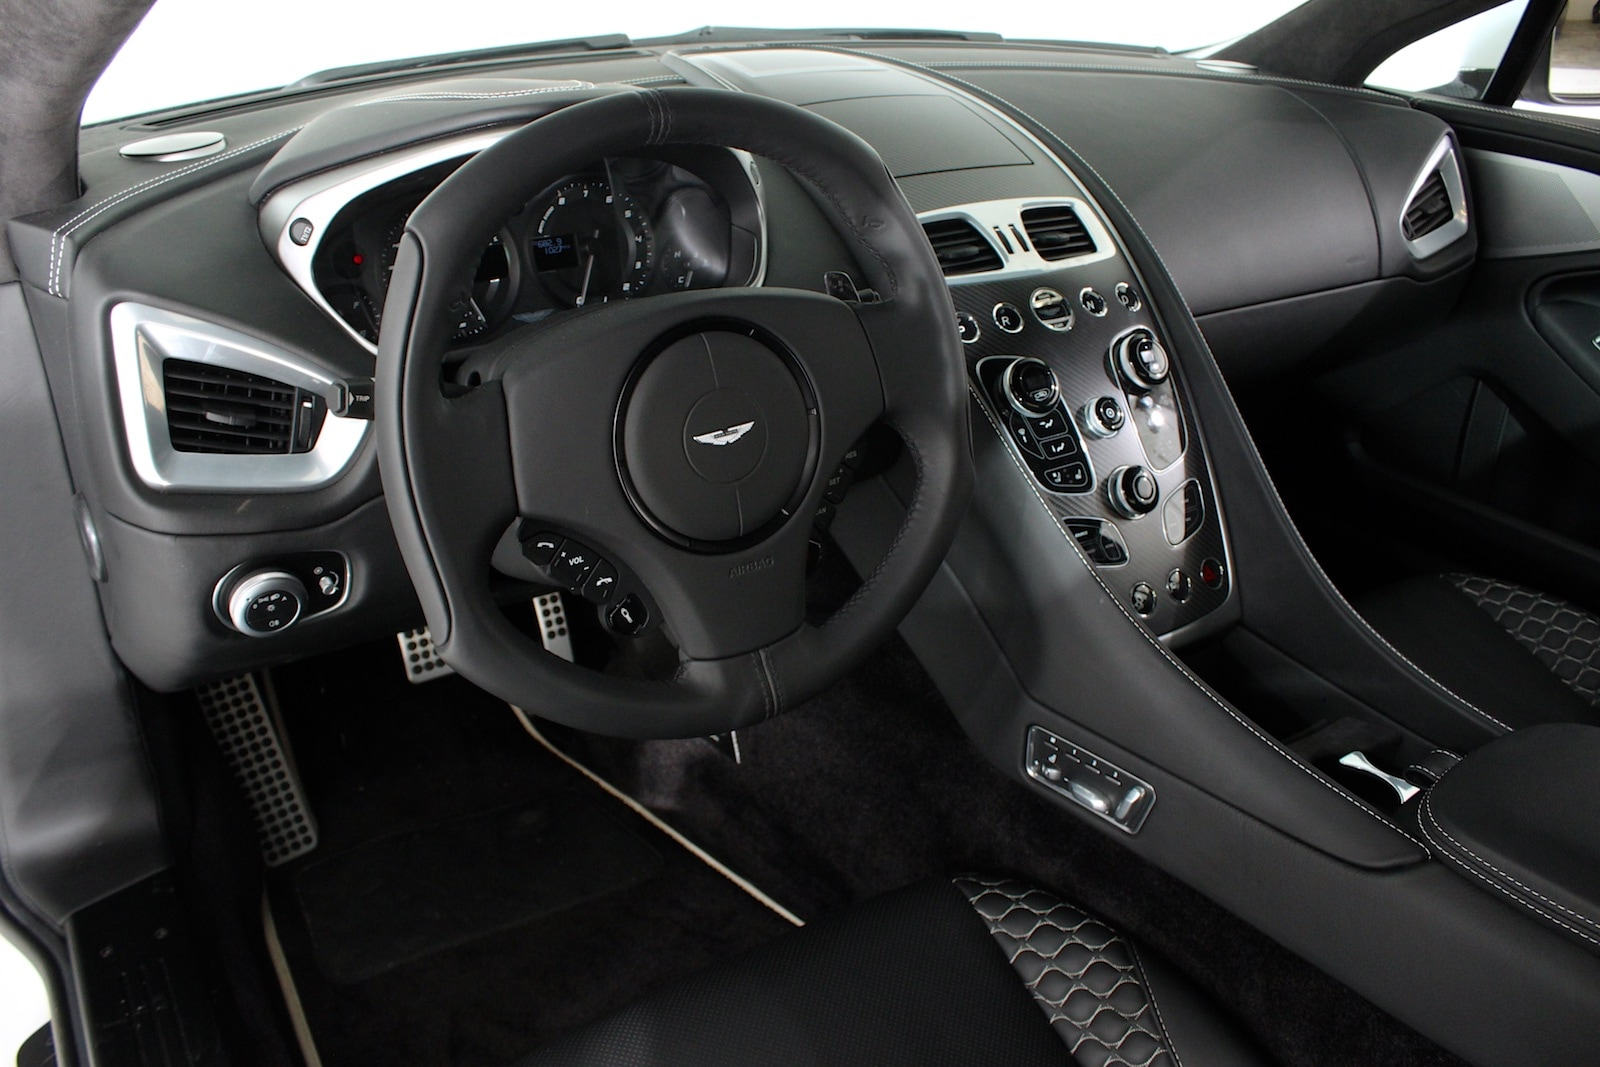 ASTON MARTIN VANQUISH Coupe For Sale In Plainview NY At - Aston martin long island